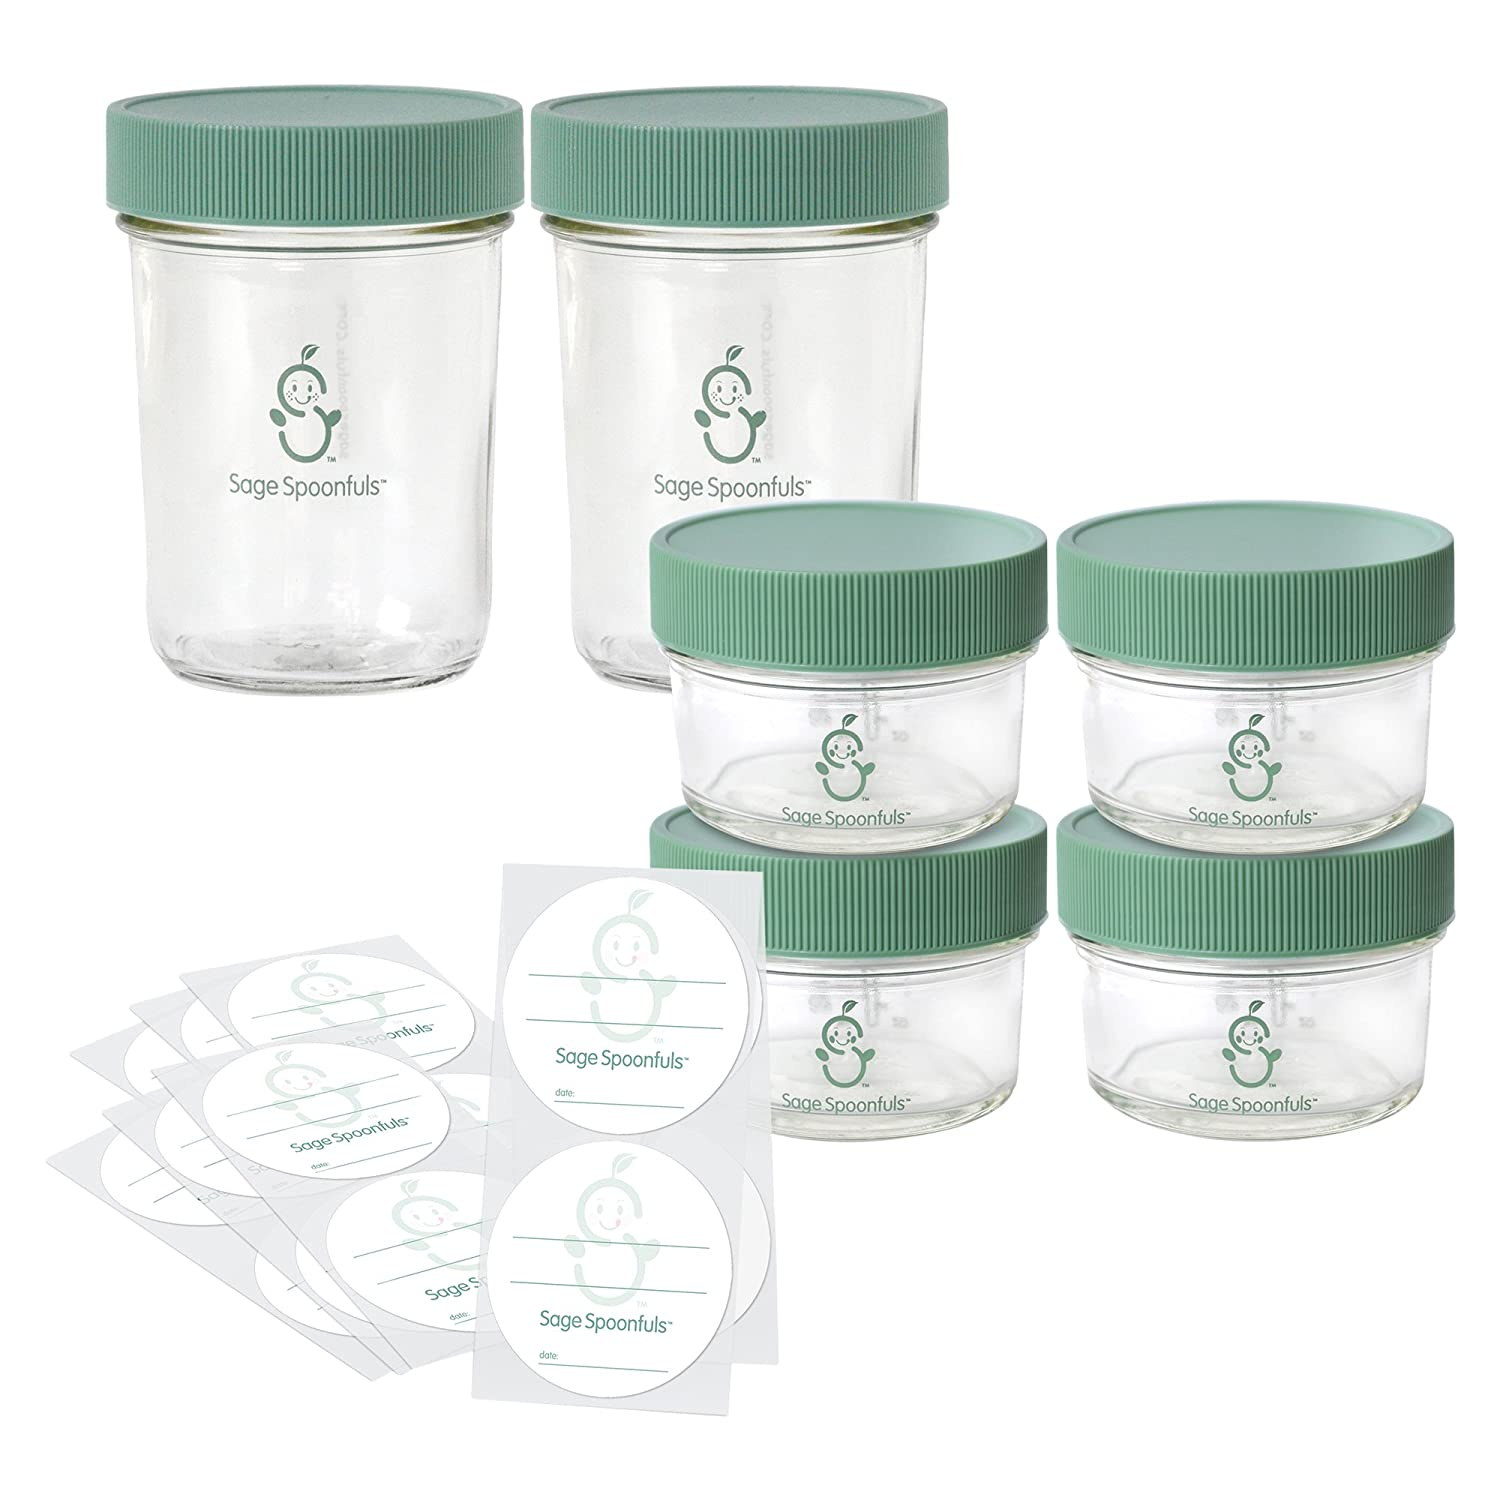 Sage Spoonfuls Make in Bulk Glass Jars, 2 8oz & 4 4oz glass jars SS1754`